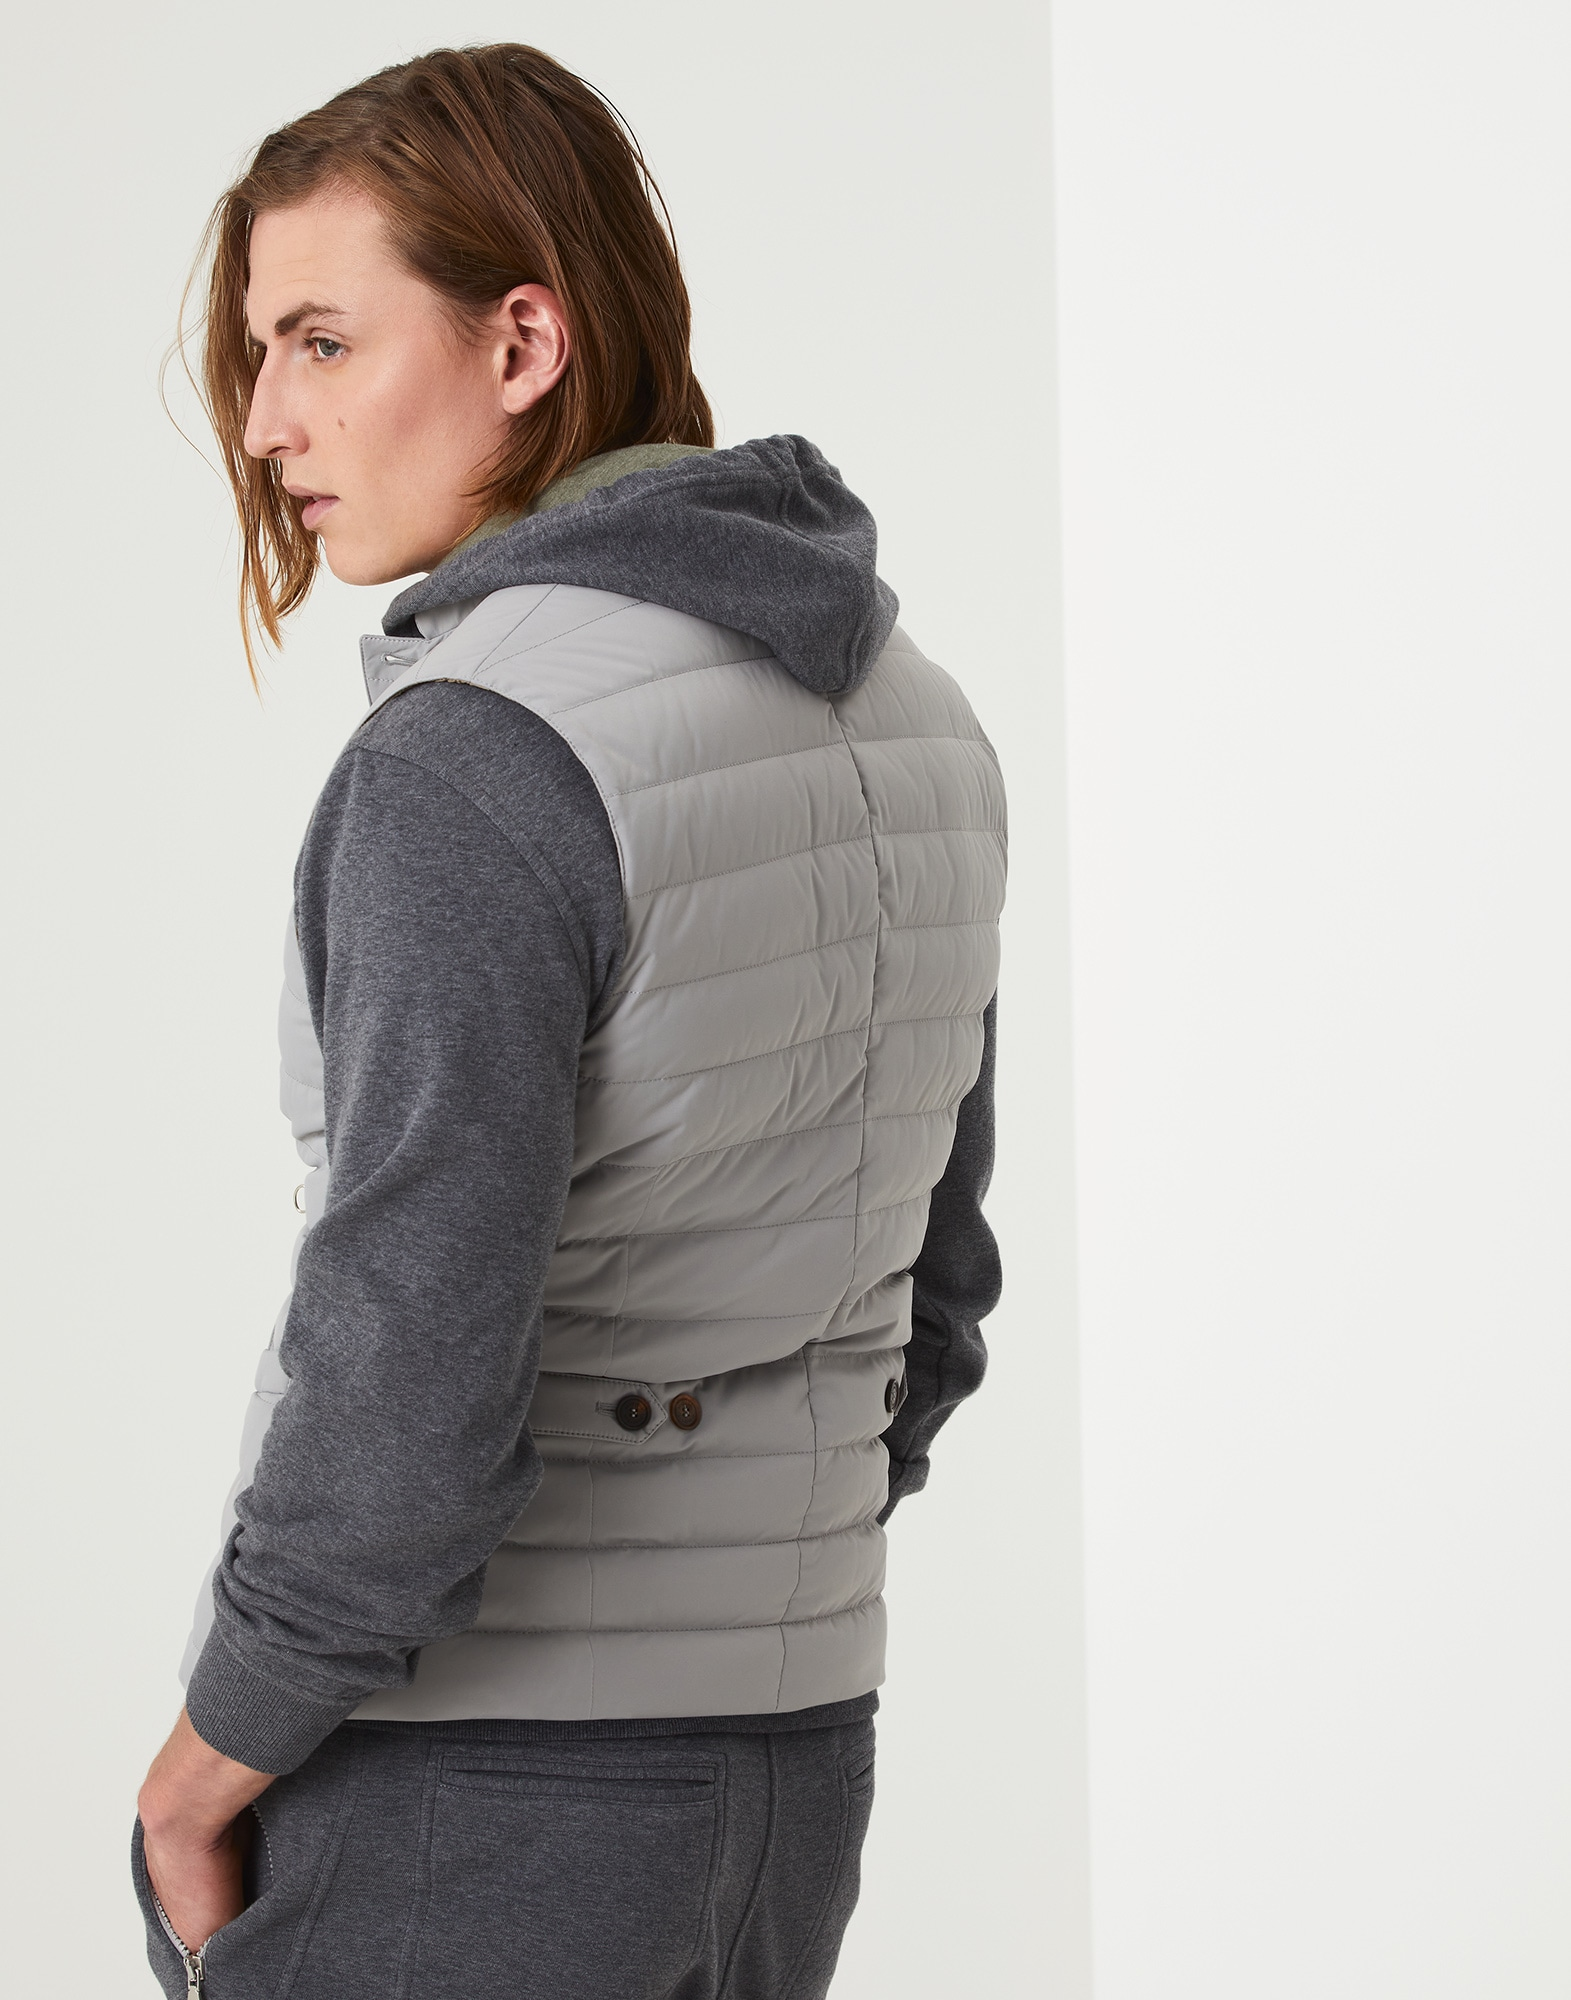 Down Sleeveless Jacket - Back view